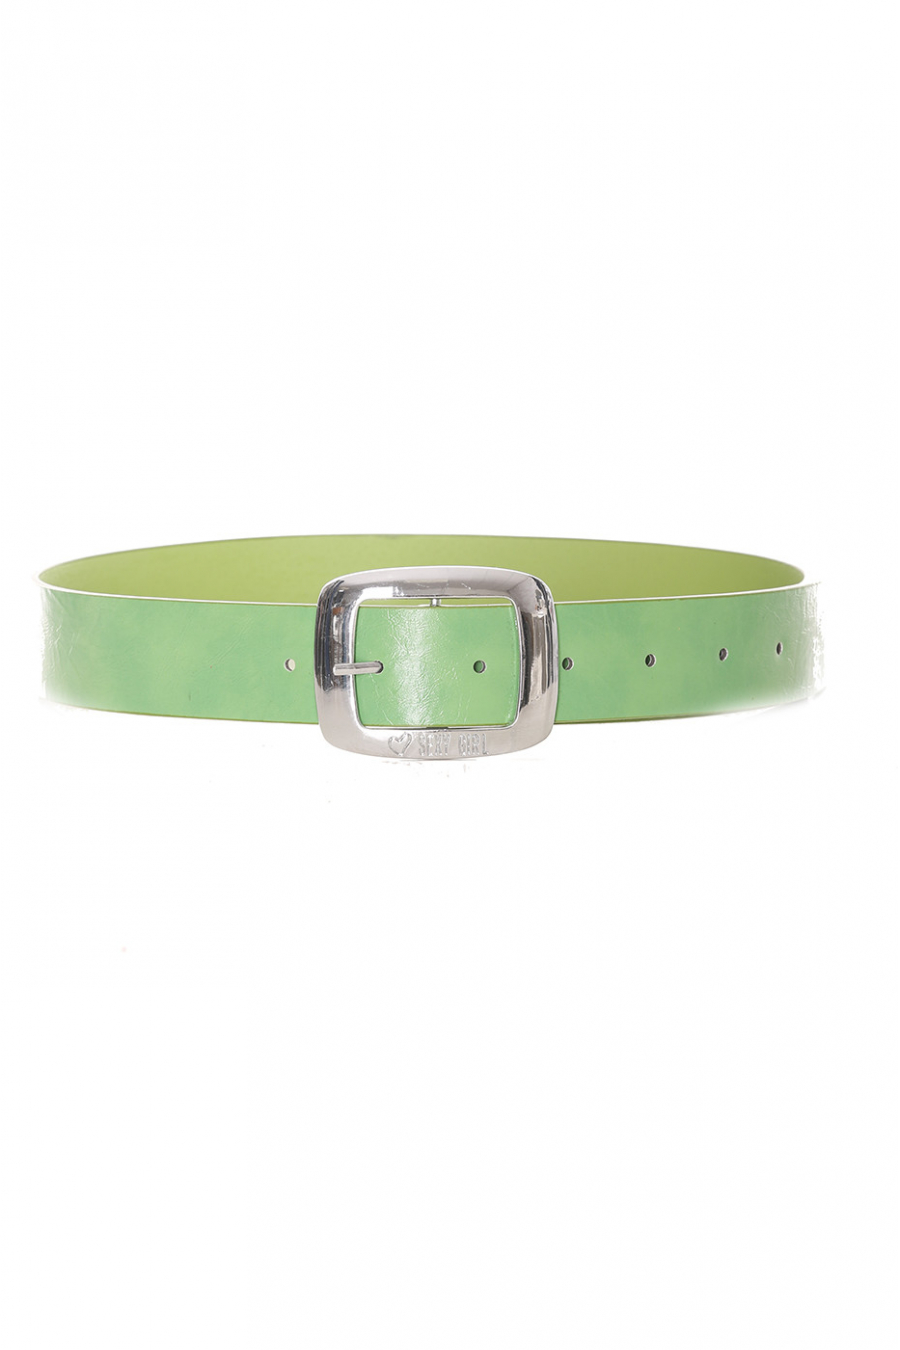 Basic green solid green belt - D7358